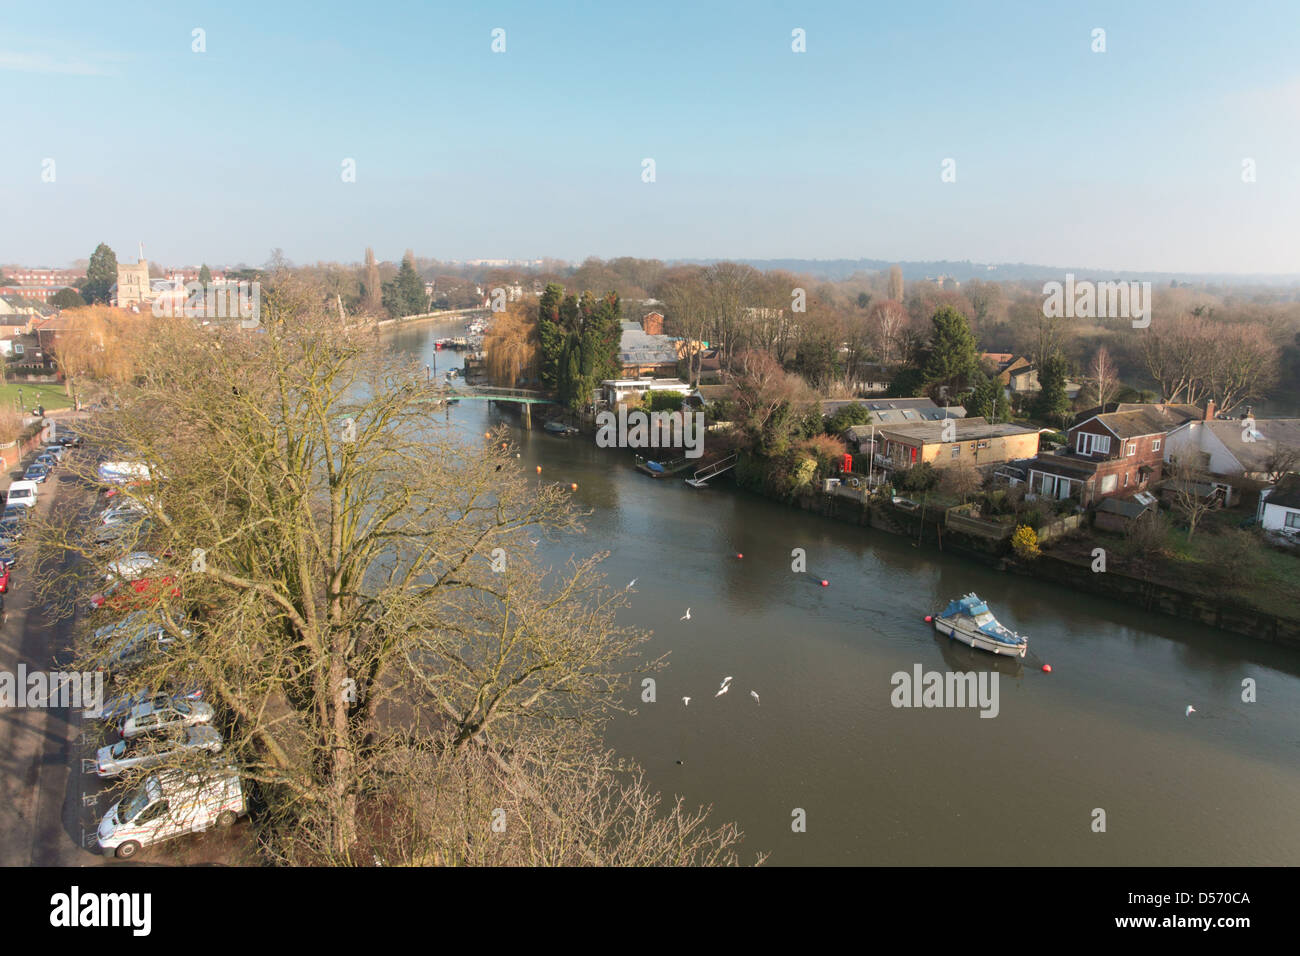 View of the River Thames at Twickenham Stock Photo